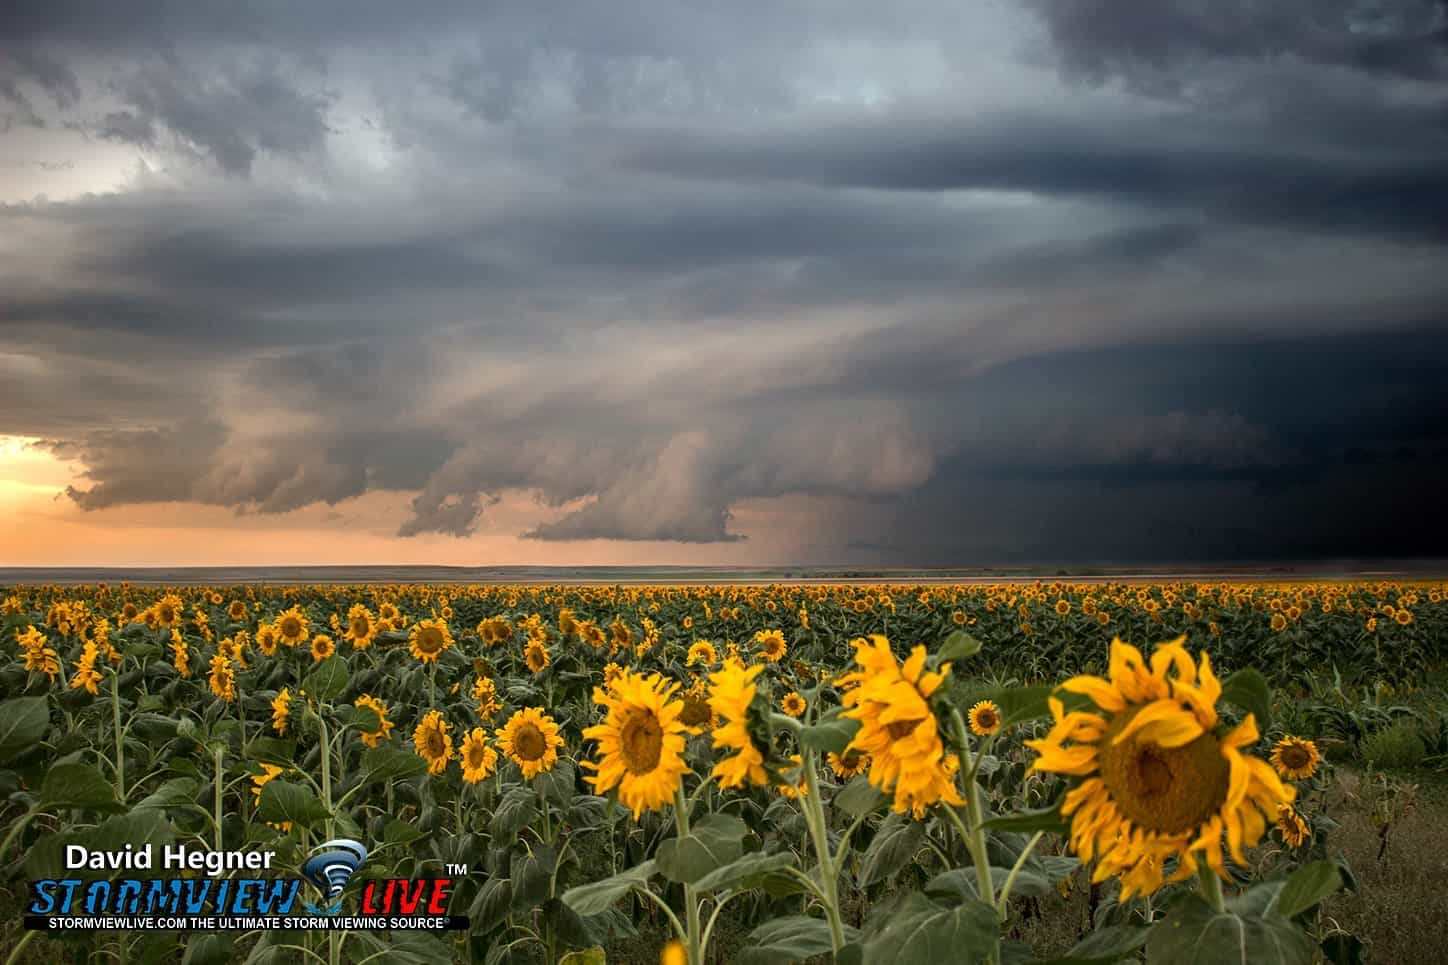 On August 18th of last year I chased a relatively marginal setup in Colorado, that started out with a storm blowing up on a boundary line and quickly going tornado warned. This was the last relevant storm of the day and once I came across this sunflower field I decided I'd end my chase with some still photography and time lapse.